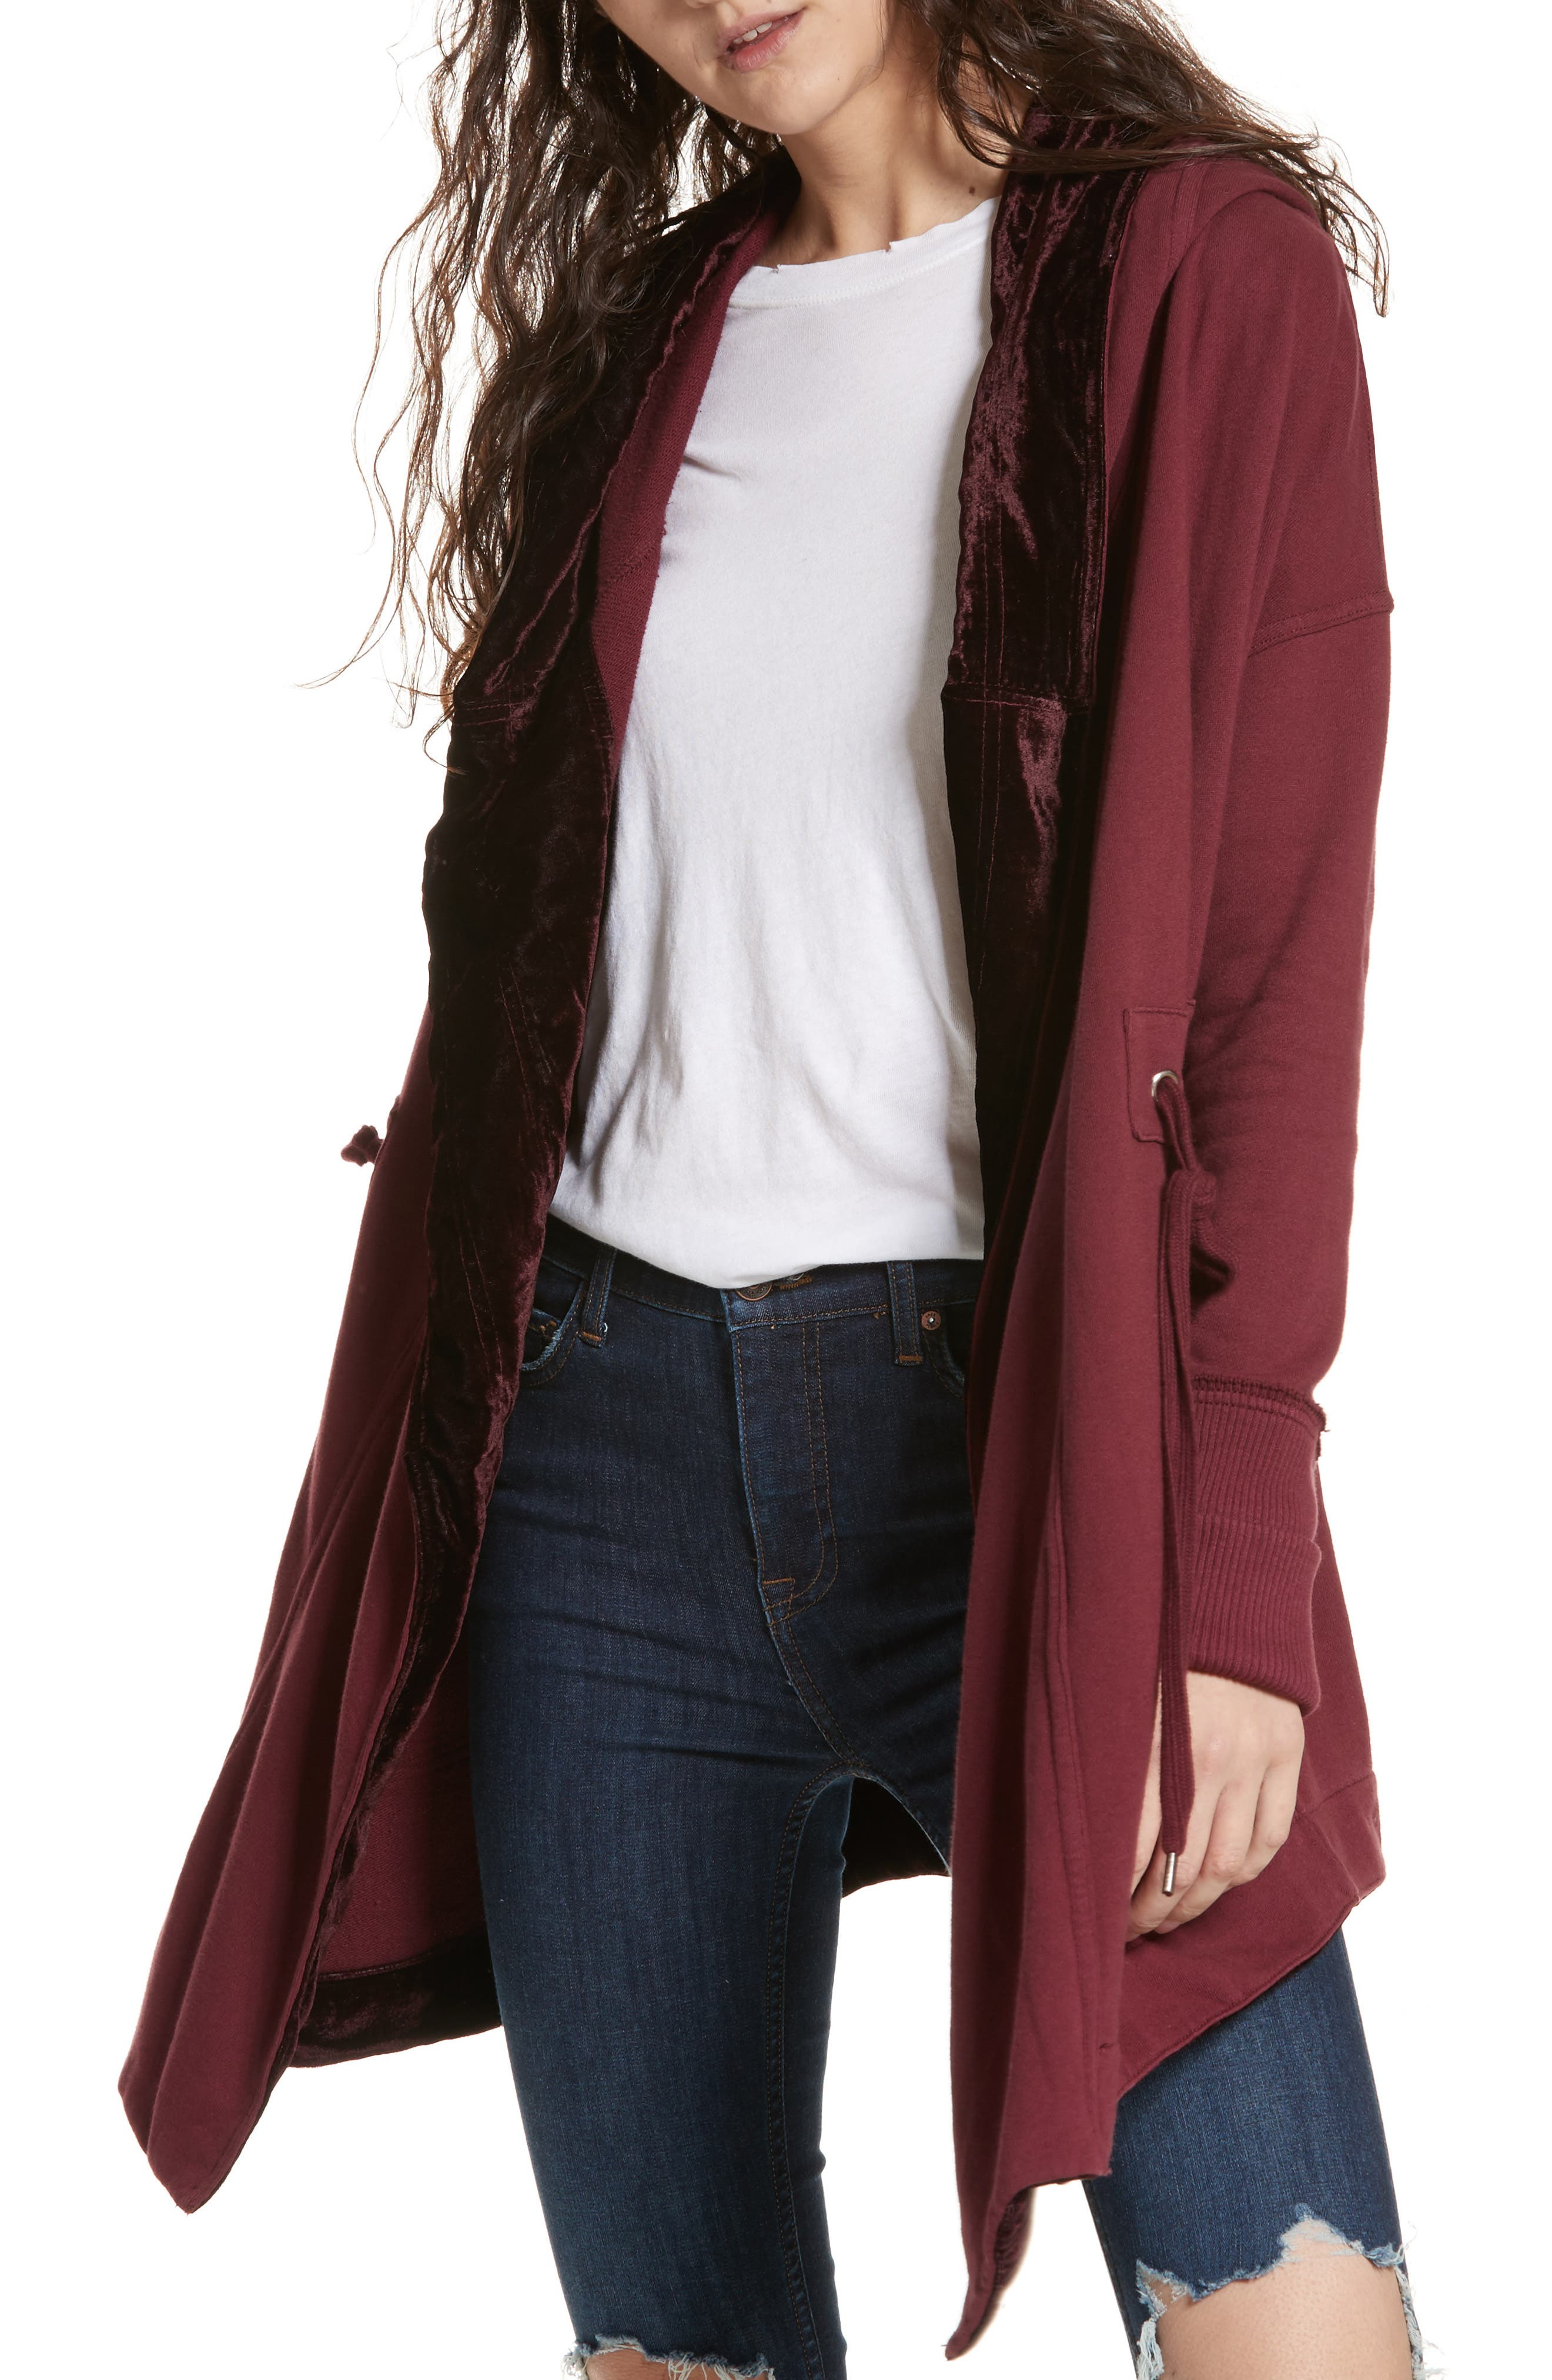 Westwood Cardigan,                             Main thumbnail 1, color,                             Wine